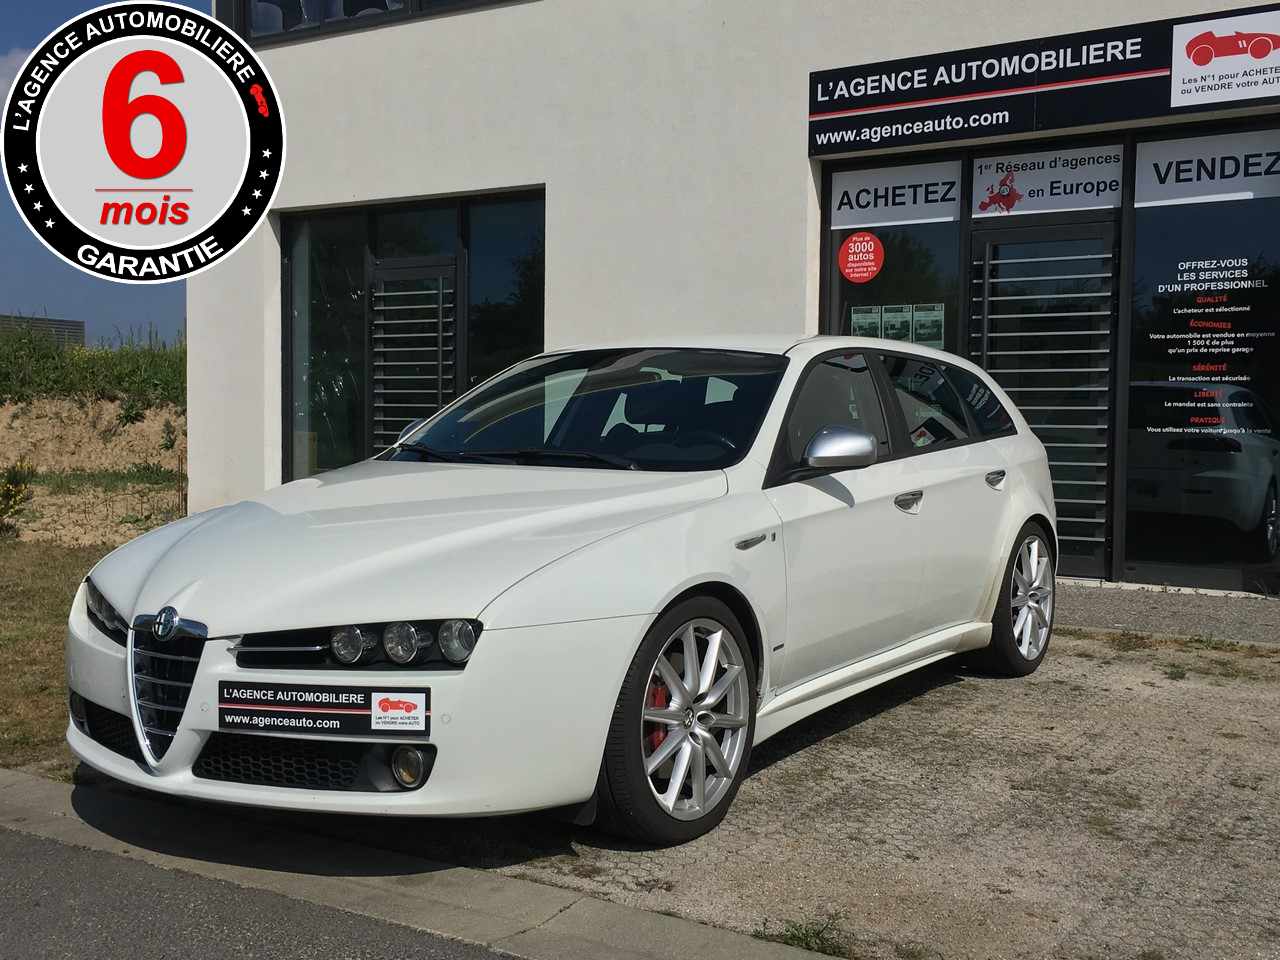 alfa romeo 159 sw 2 4 jtdm 200ch ti qtronic occasion pornic pas cher voiture occasion loire. Black Bedroom Furniture Sets. Home Design Ideas